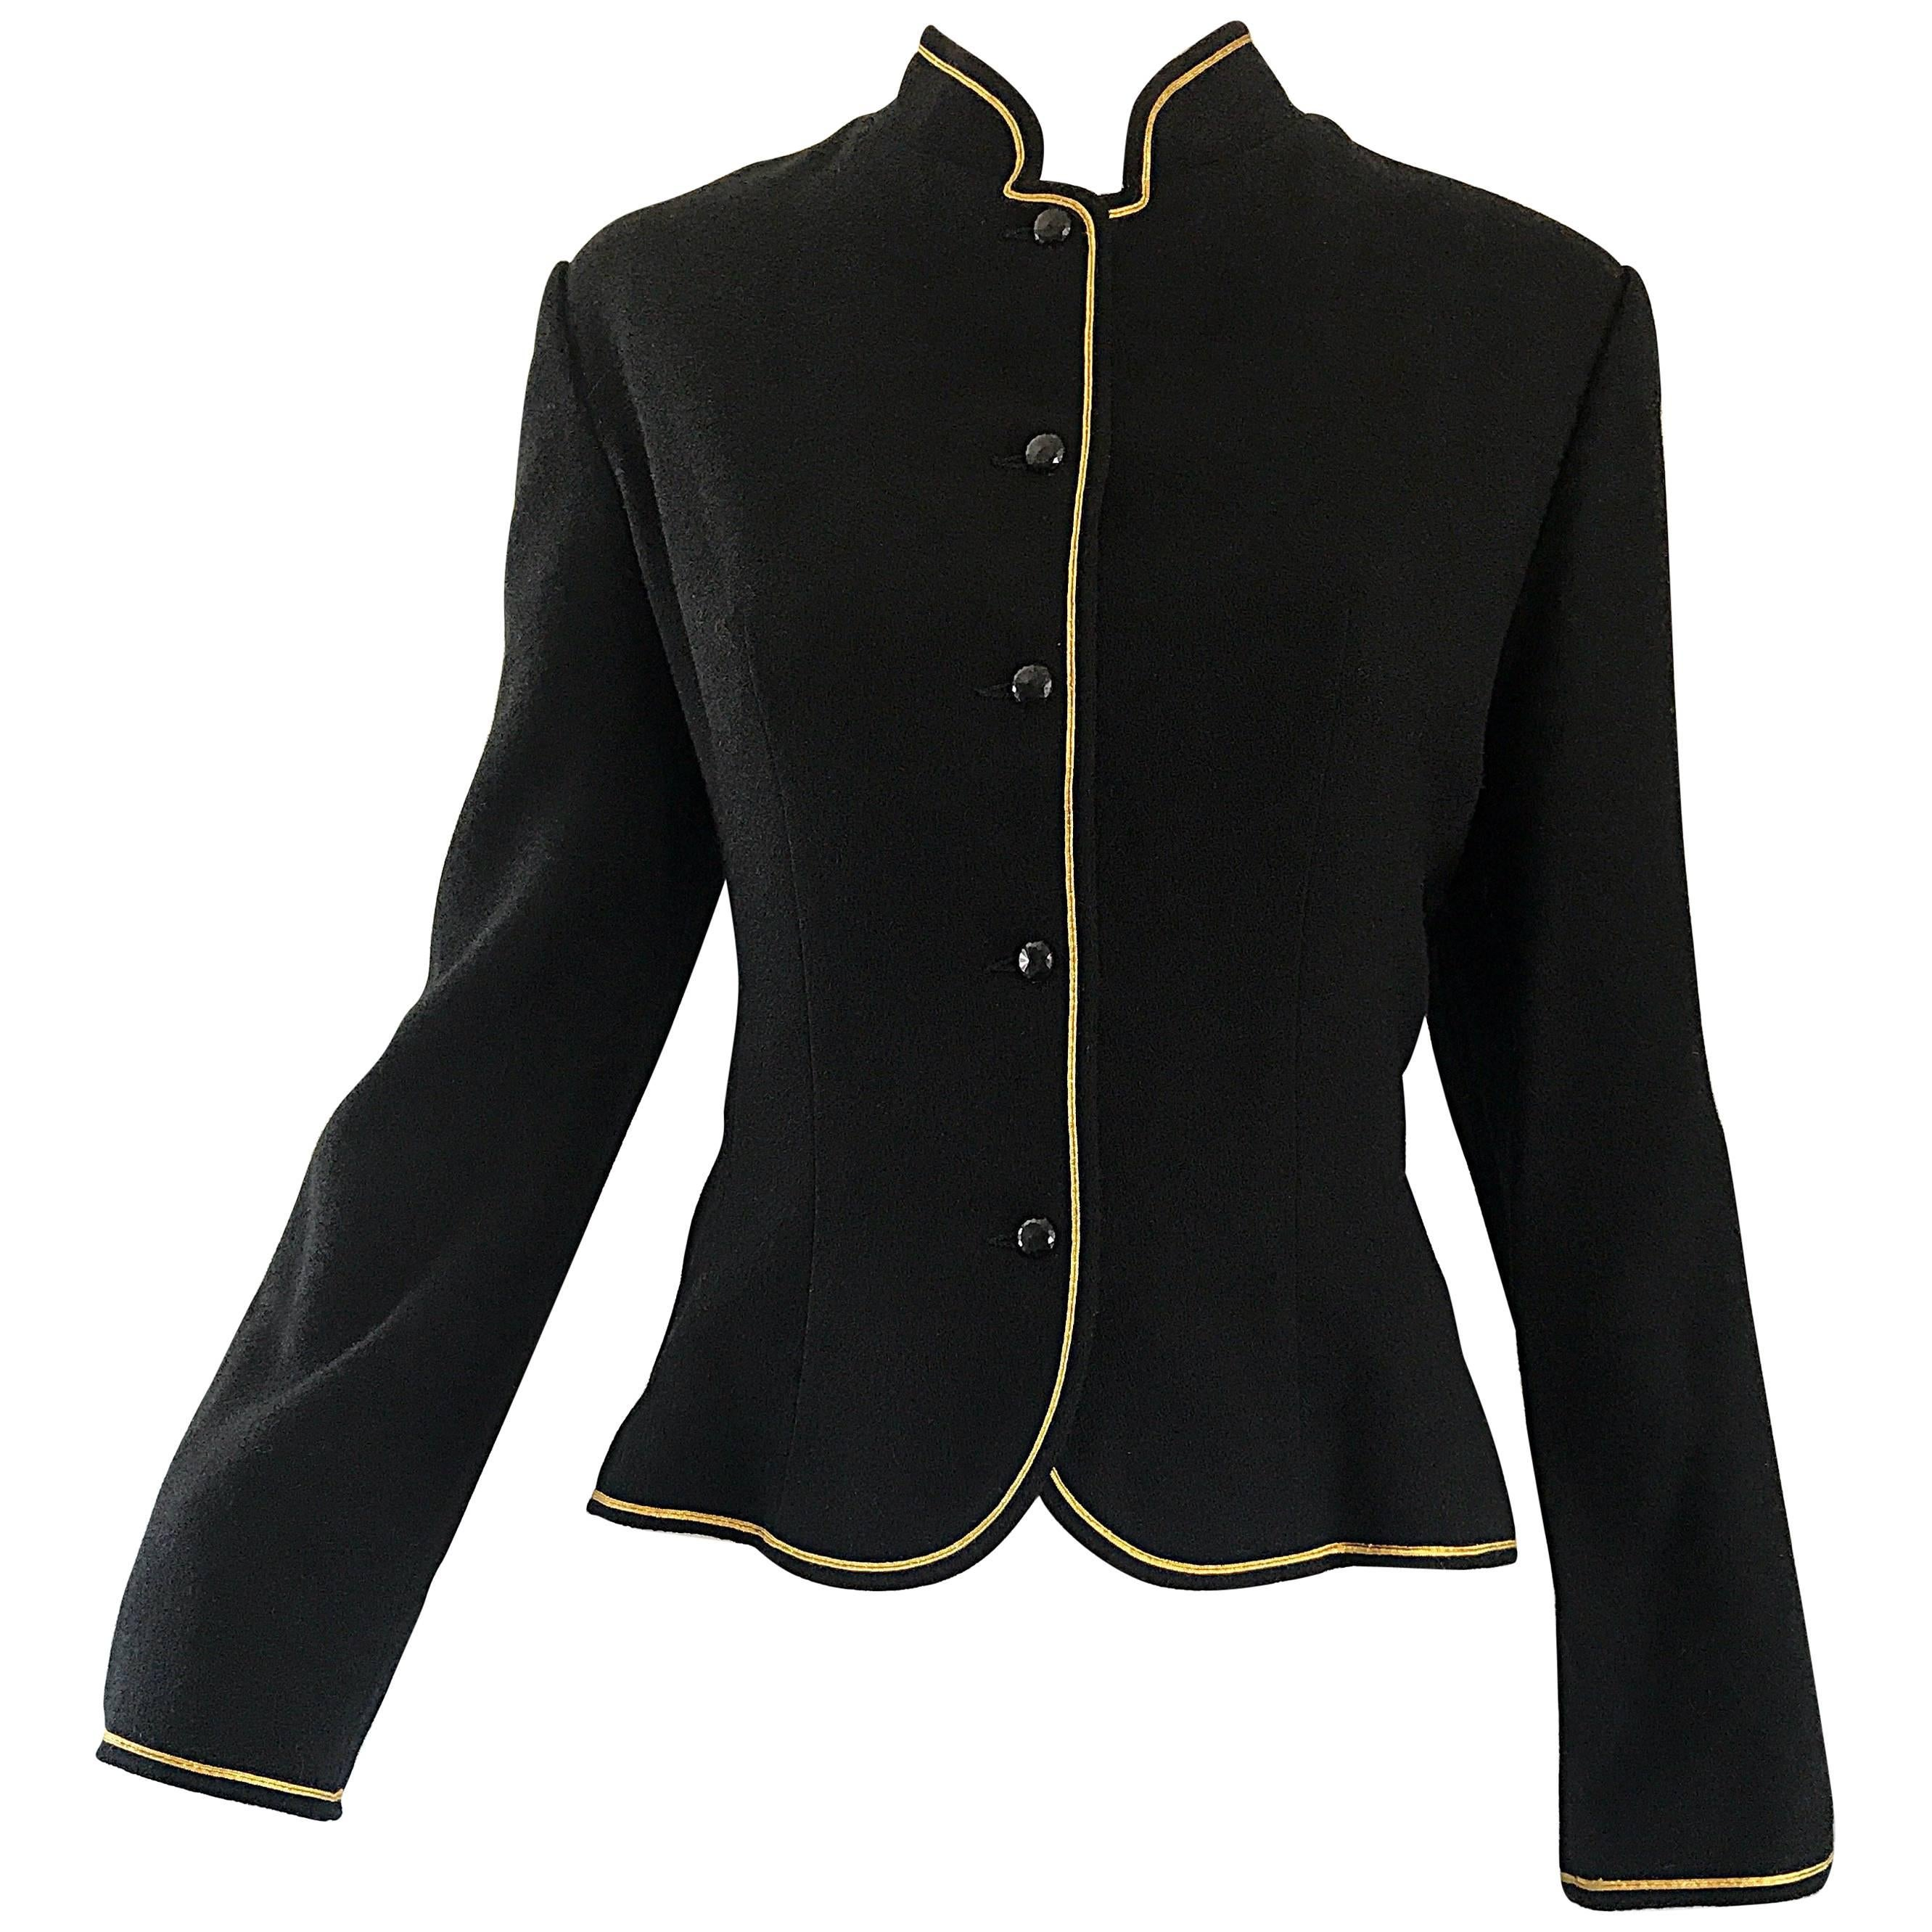 1960s Geoffrey Beene Black and Gold Military Inspired Vintage 60s Wool Jacket